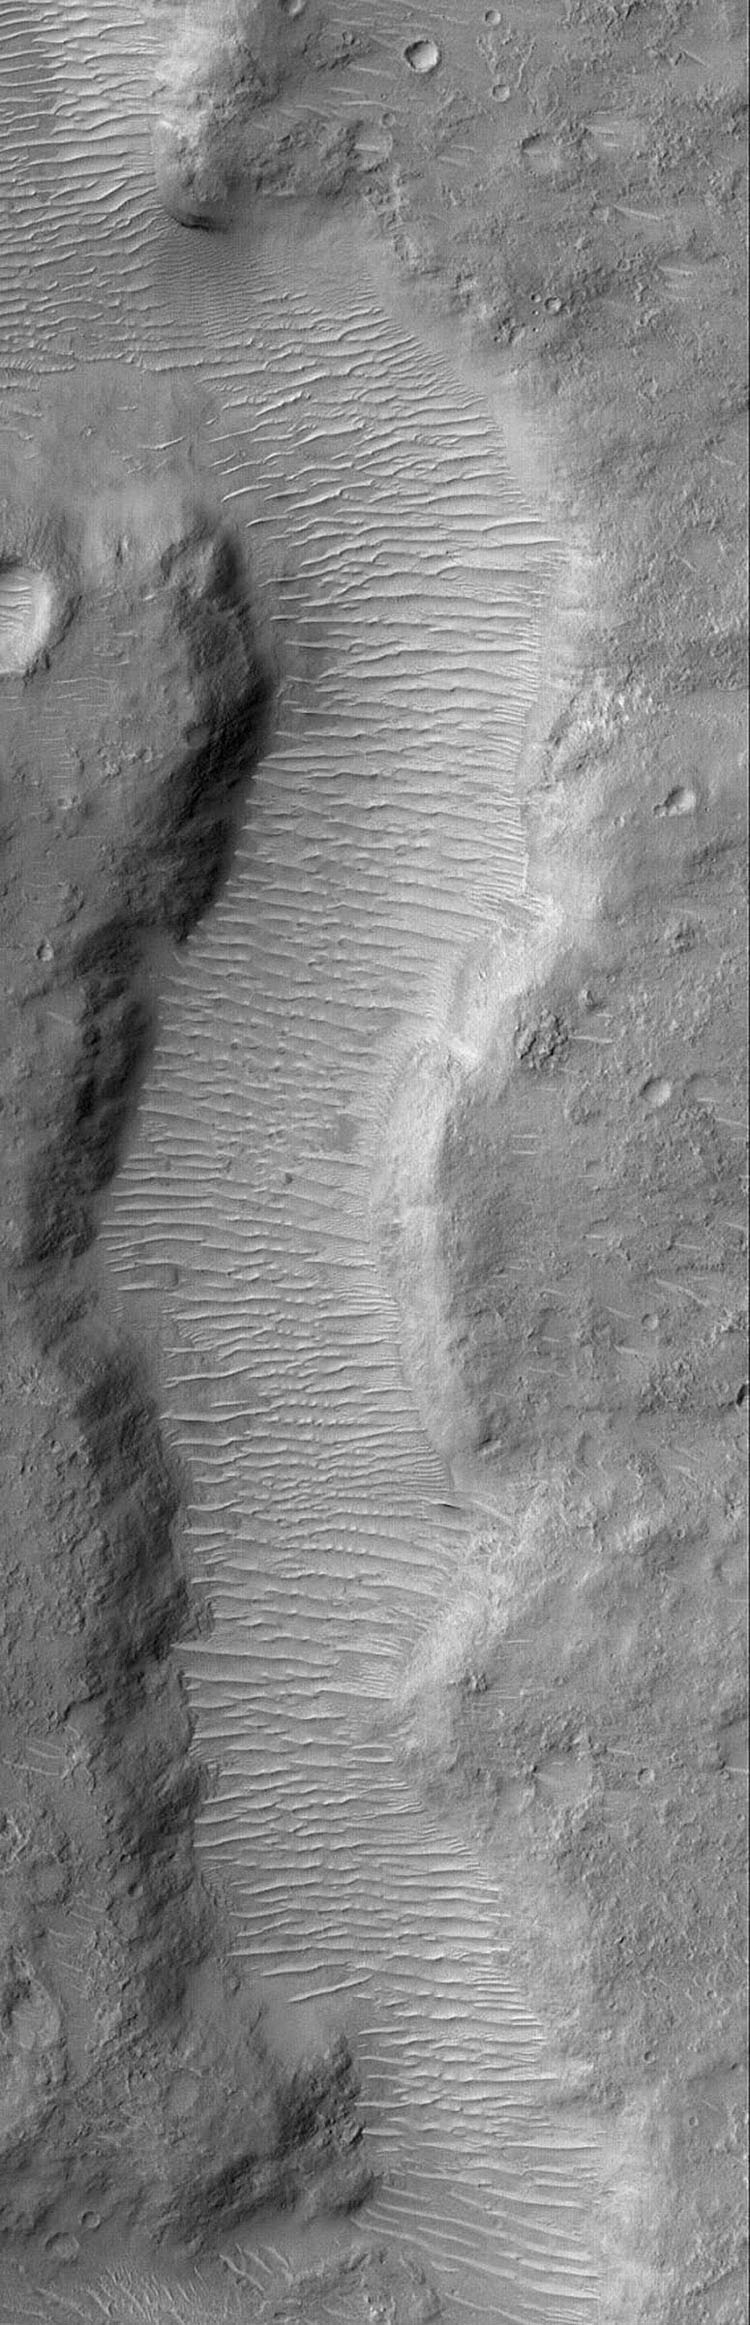 NASA's Mars Global Surveyor shows a small segment of a martian valley on Mars. The valley floor is covered by a plethora of large, windblown ripples.